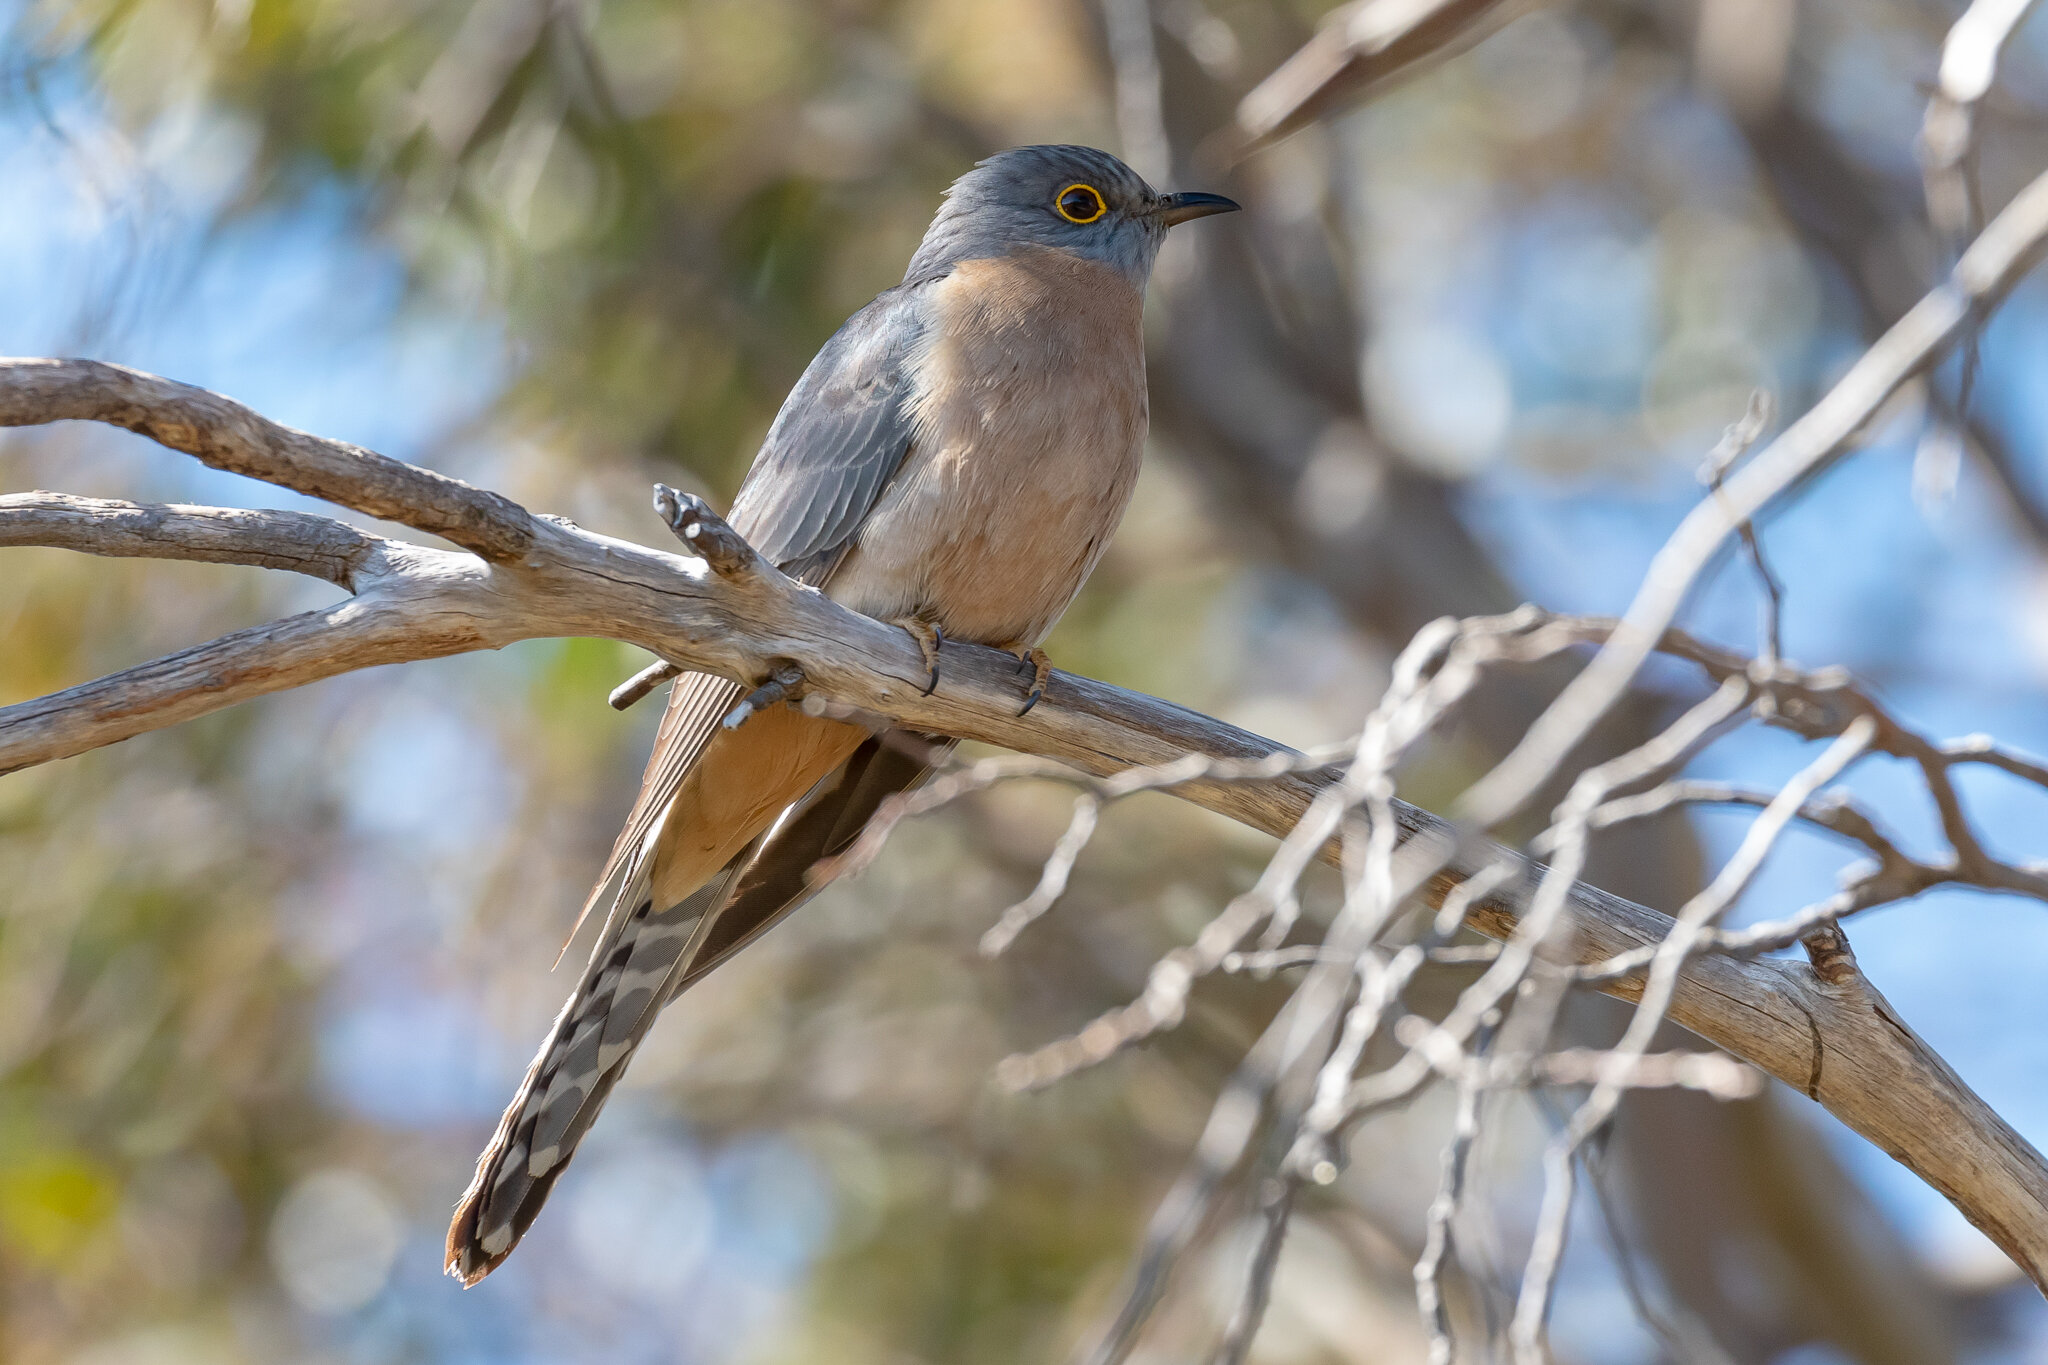 Fan-tailed Cuckoo at Barren Grounds on 18 October